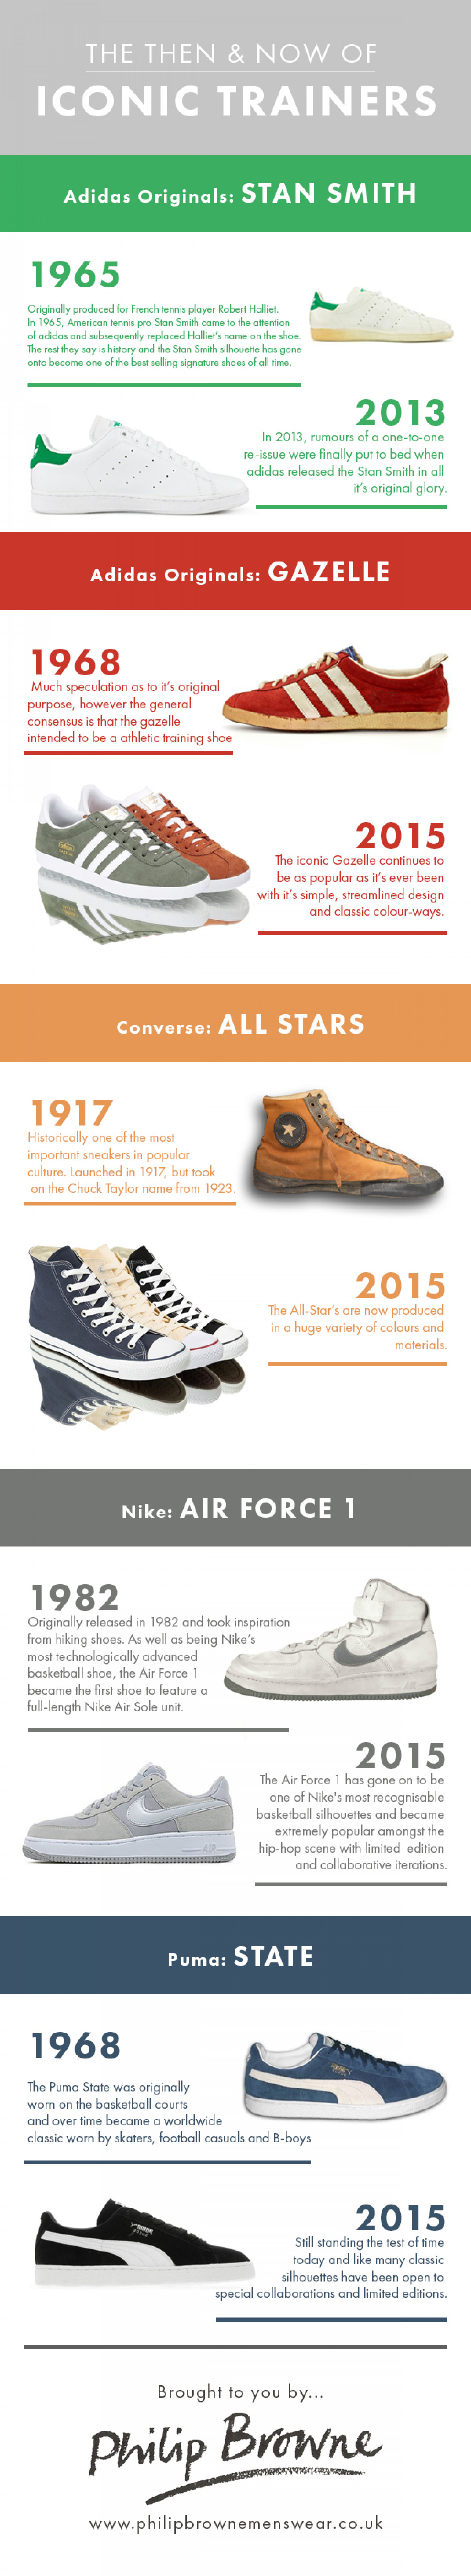 The Then & Now of Iconic Trainers Infographic